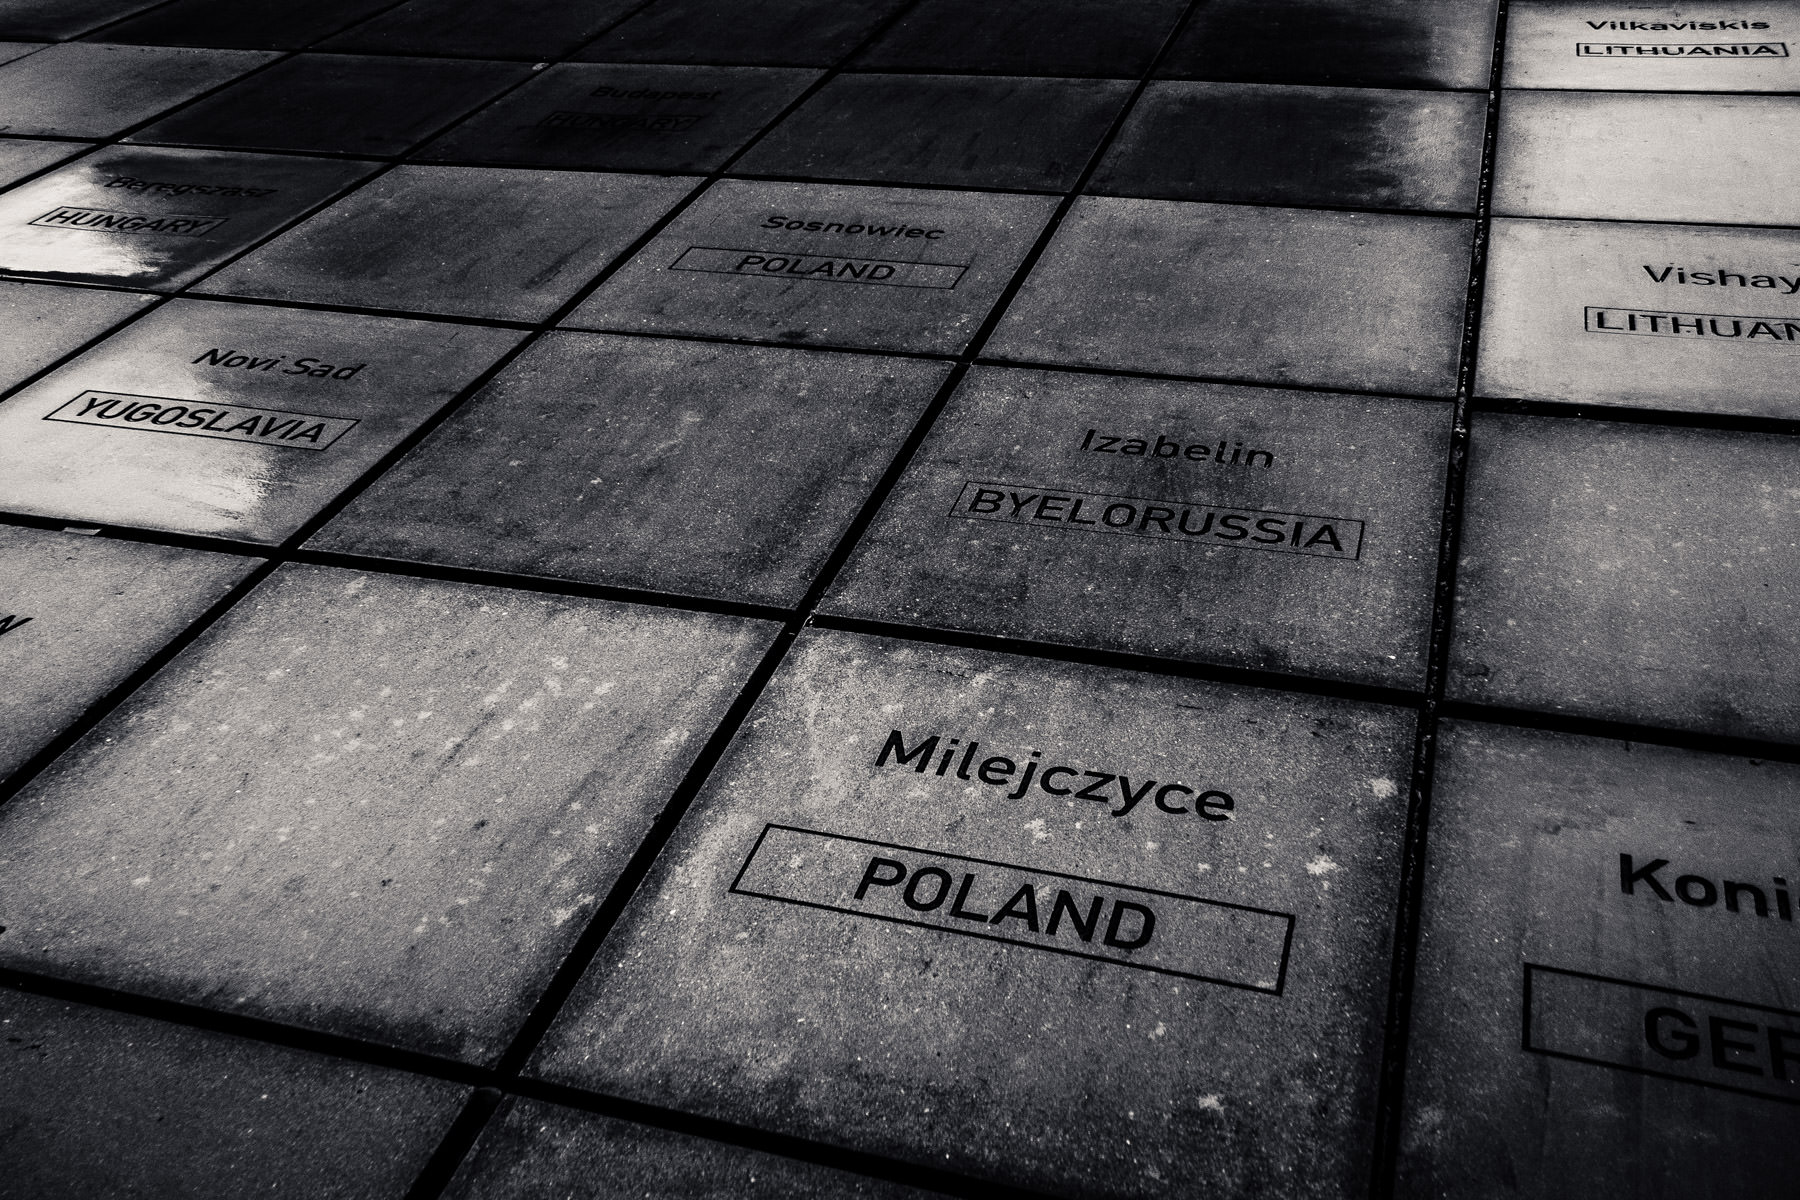 This concrete slab outside the Houston Holocaust Museum is inscribed with the names of destroyed Jewish communities of Europe.